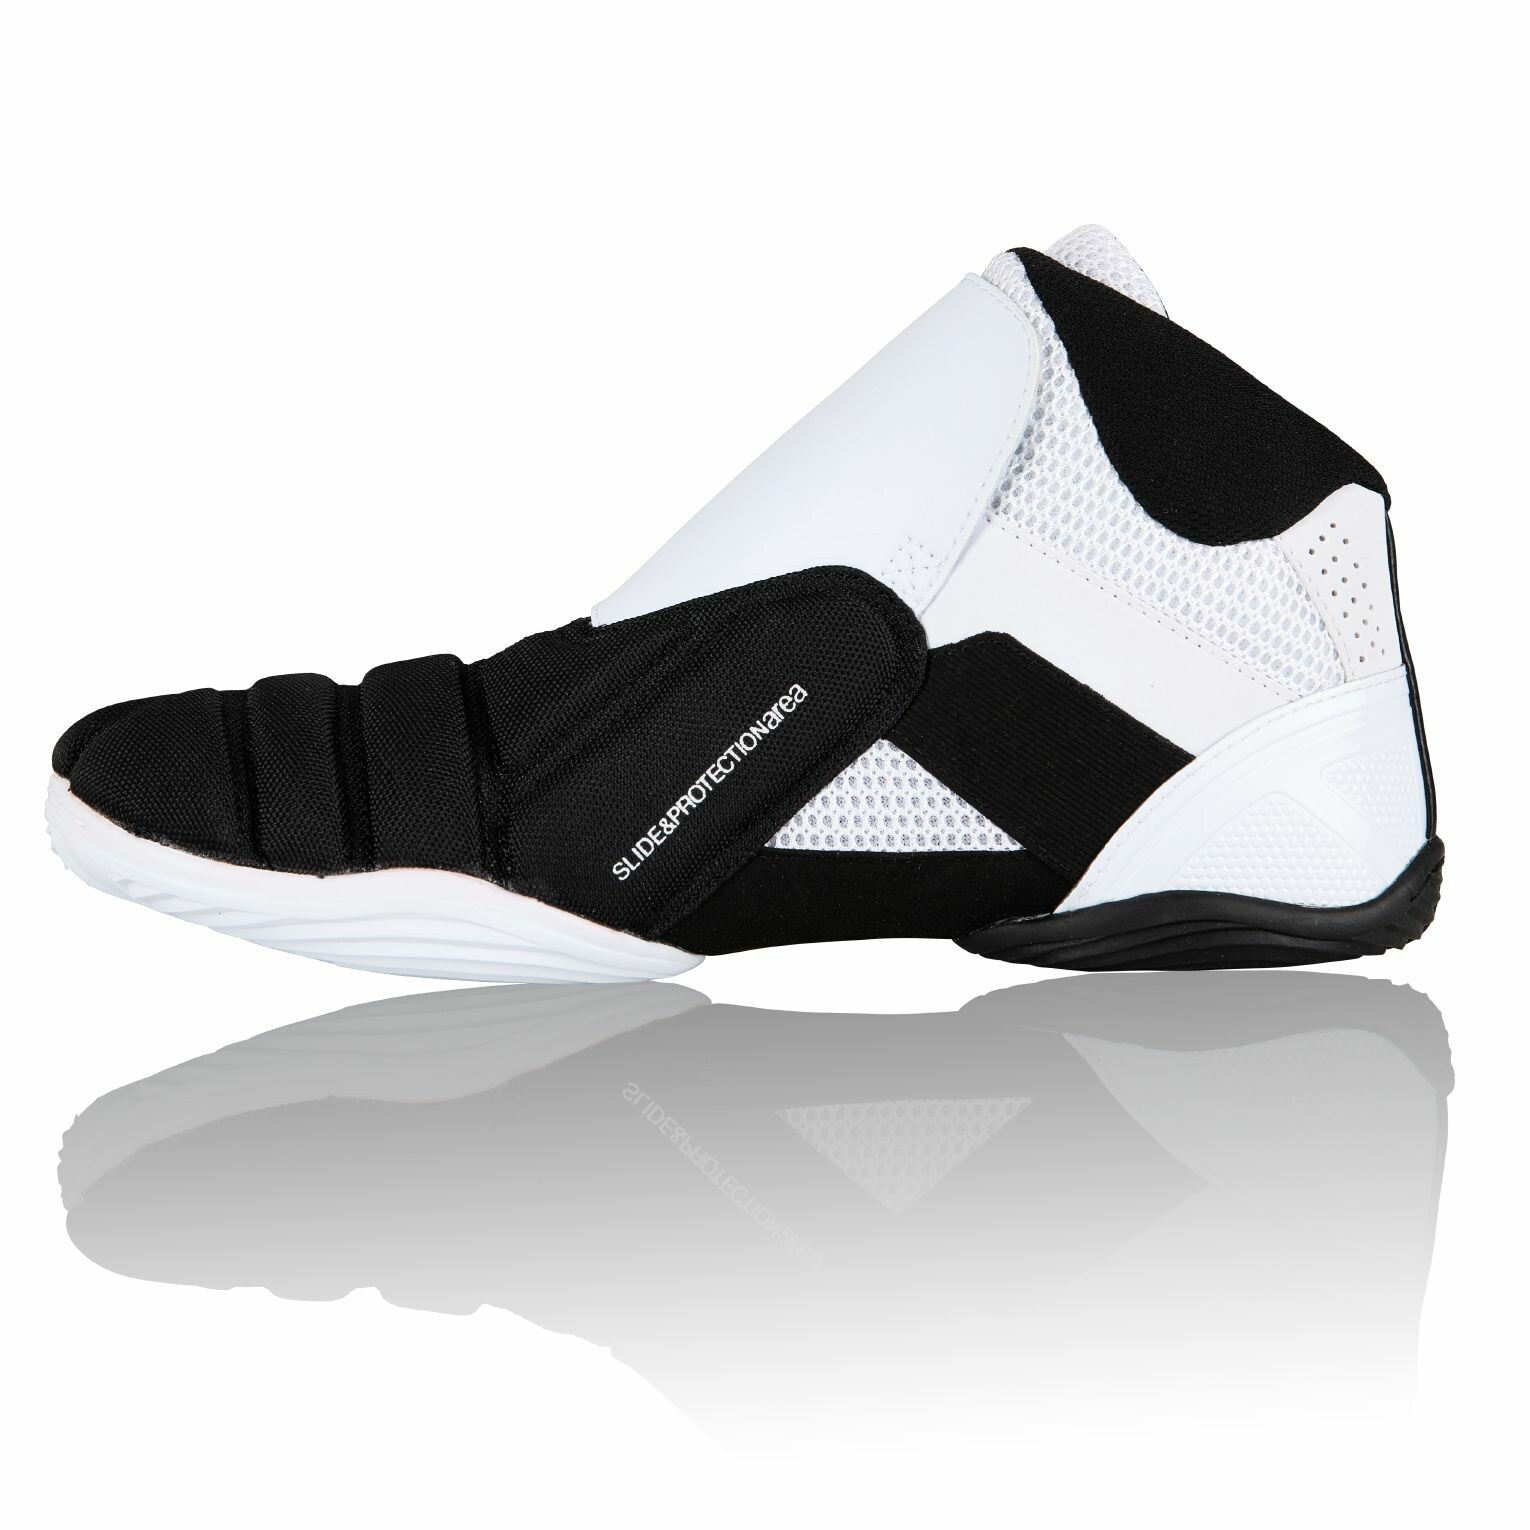 SALMING Slide 5 Shoe White/Black